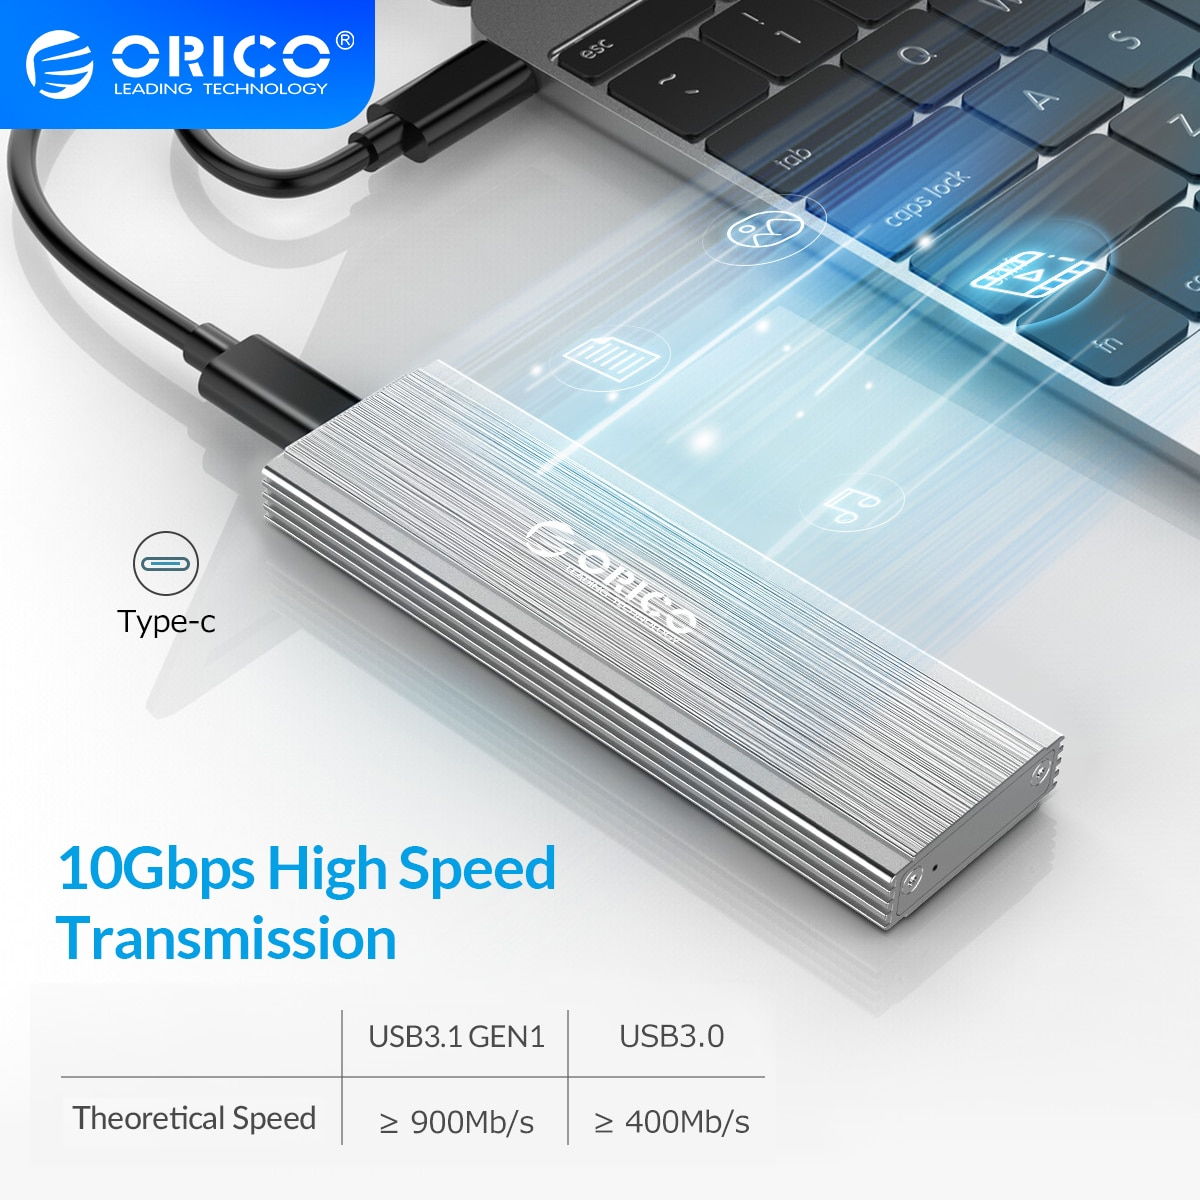 ORICO M.2 SSD Enclosure Adapter NVMe NGFF Aluminum M2 SSD Case USB3.1 Type-C Gen2 10Gbps for 2230/2242/2260/2280 SSD Up to 2TB